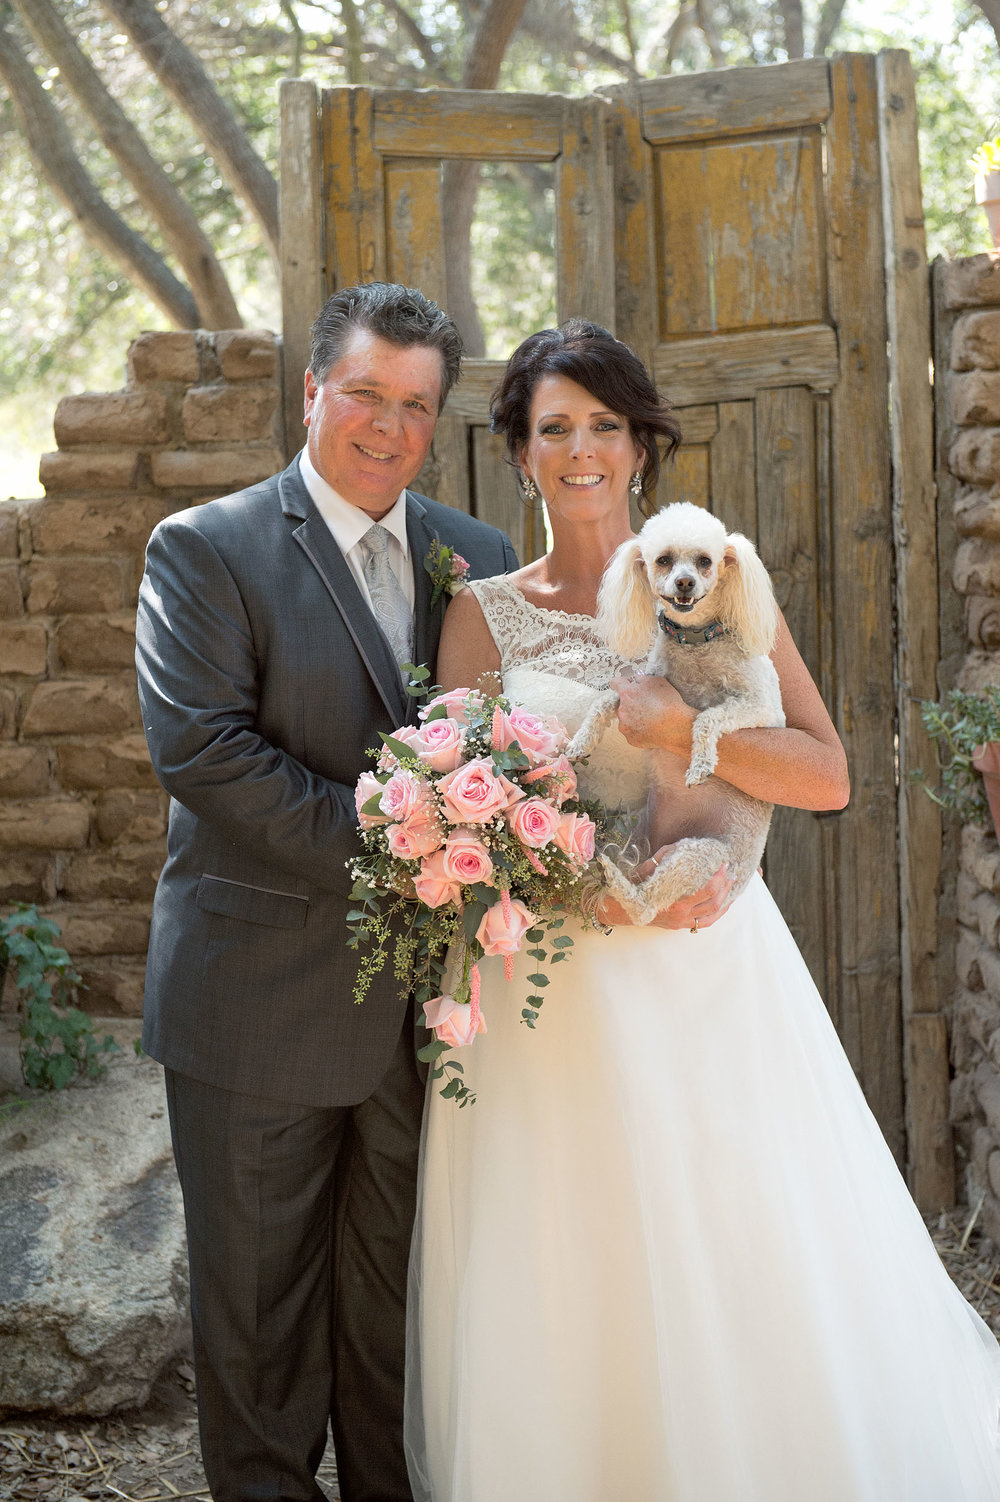 Bride, groom and pet dog portrait at Myrtle Creek Botanical Gardens & Nursery in Fallbrook.